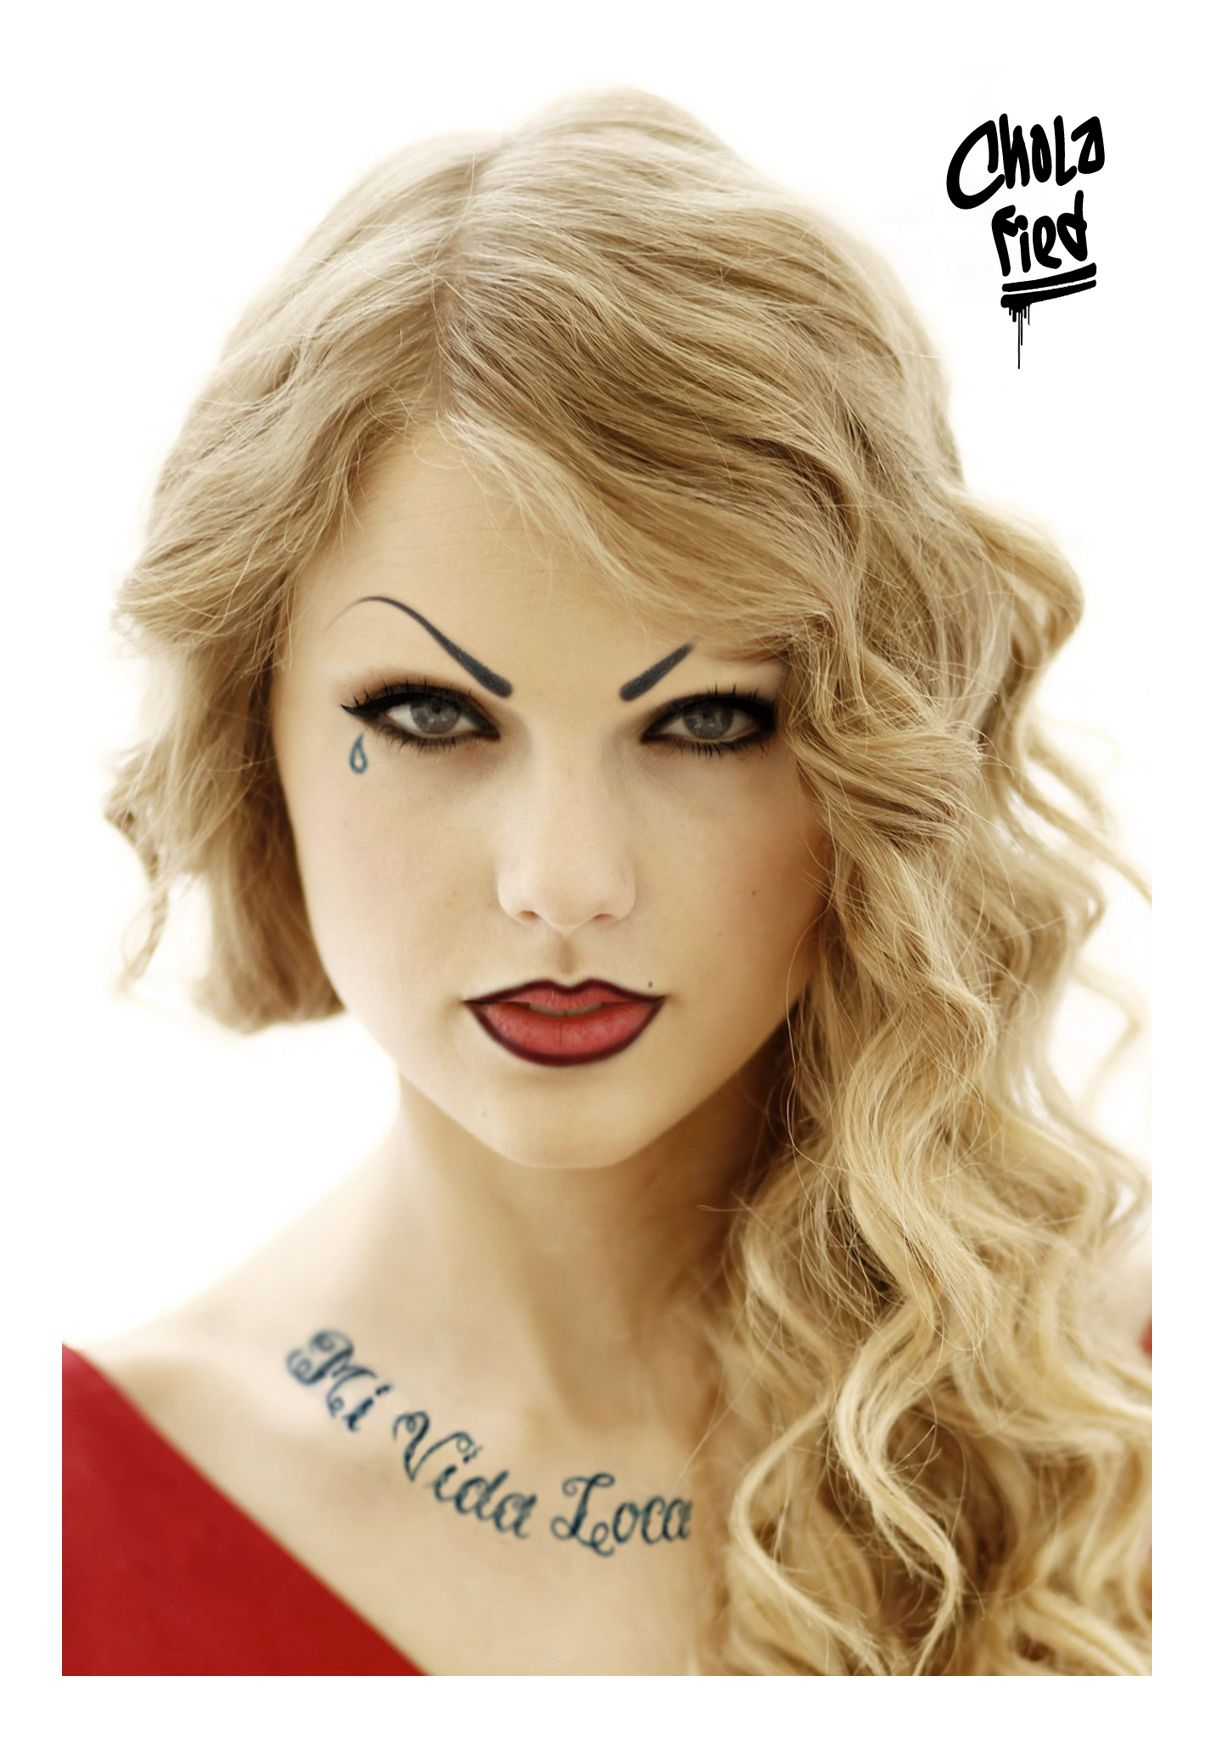 Chola Girls Naked Best one for muh gurl furro! chola taylor swift aka squinty | funny